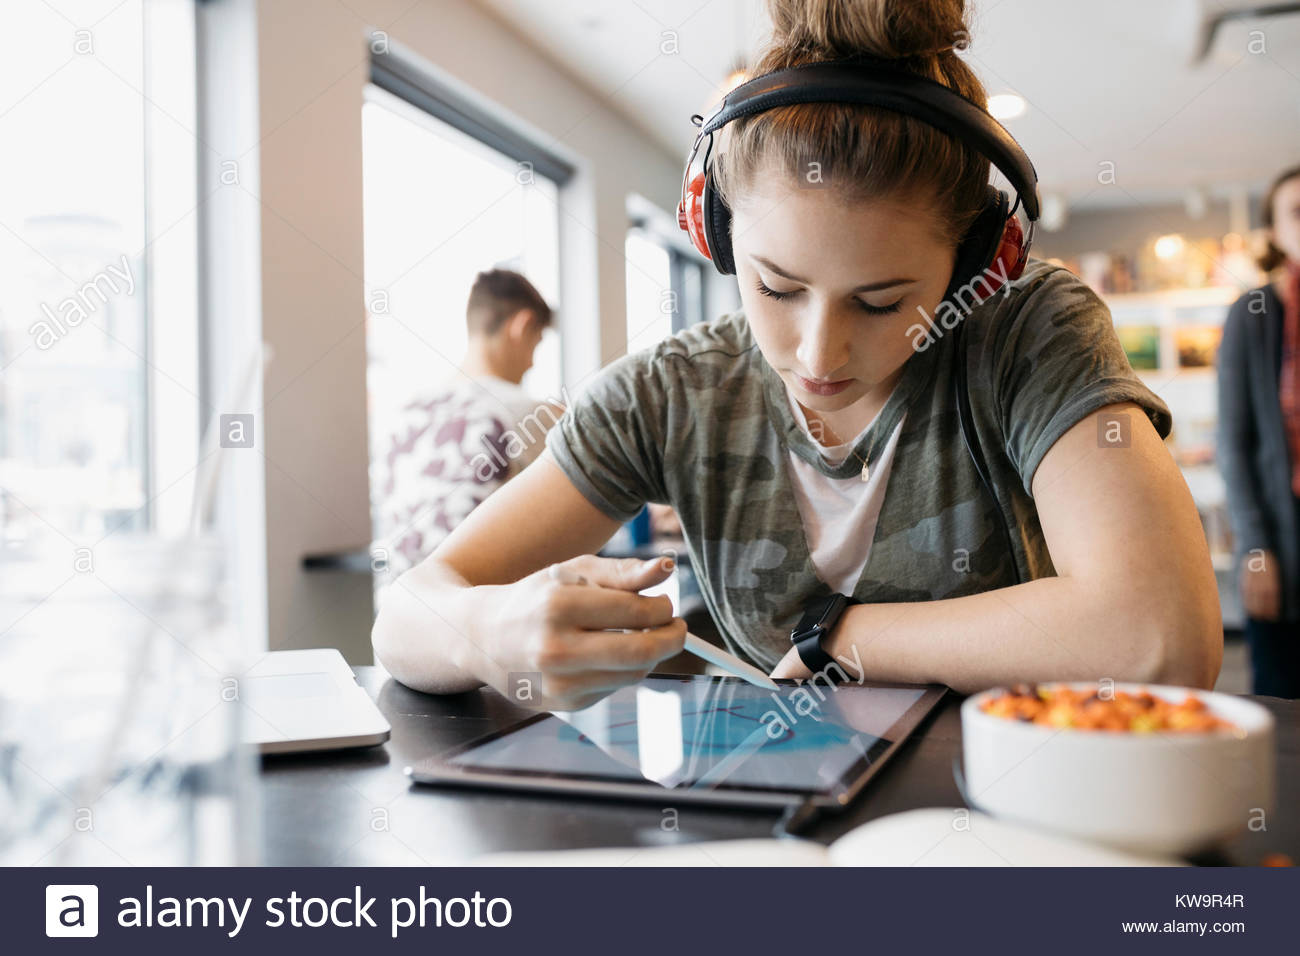 High school girl student with headphones using stylus,drawing on digital tablet in cafe - Stock Image